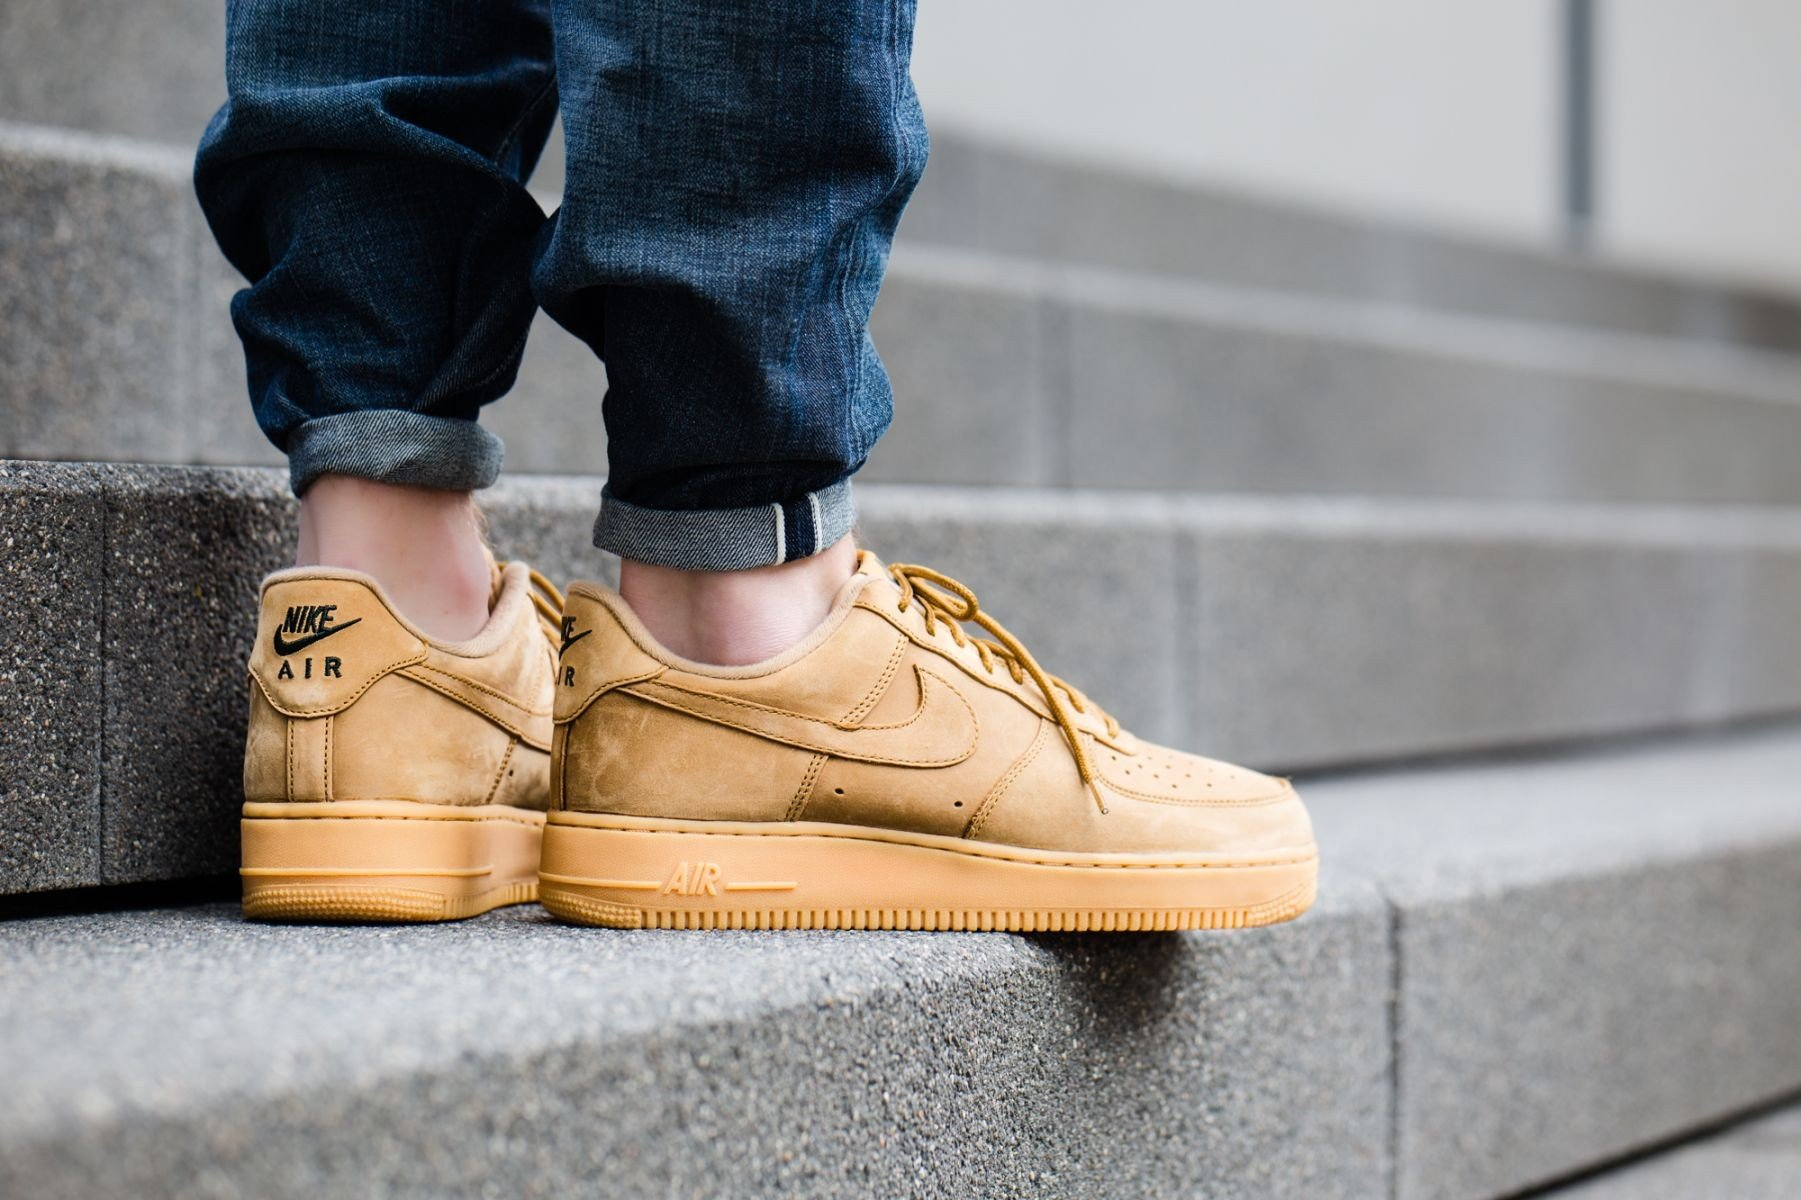 nike air force 1 07 aa4061 200 chaussures hommes